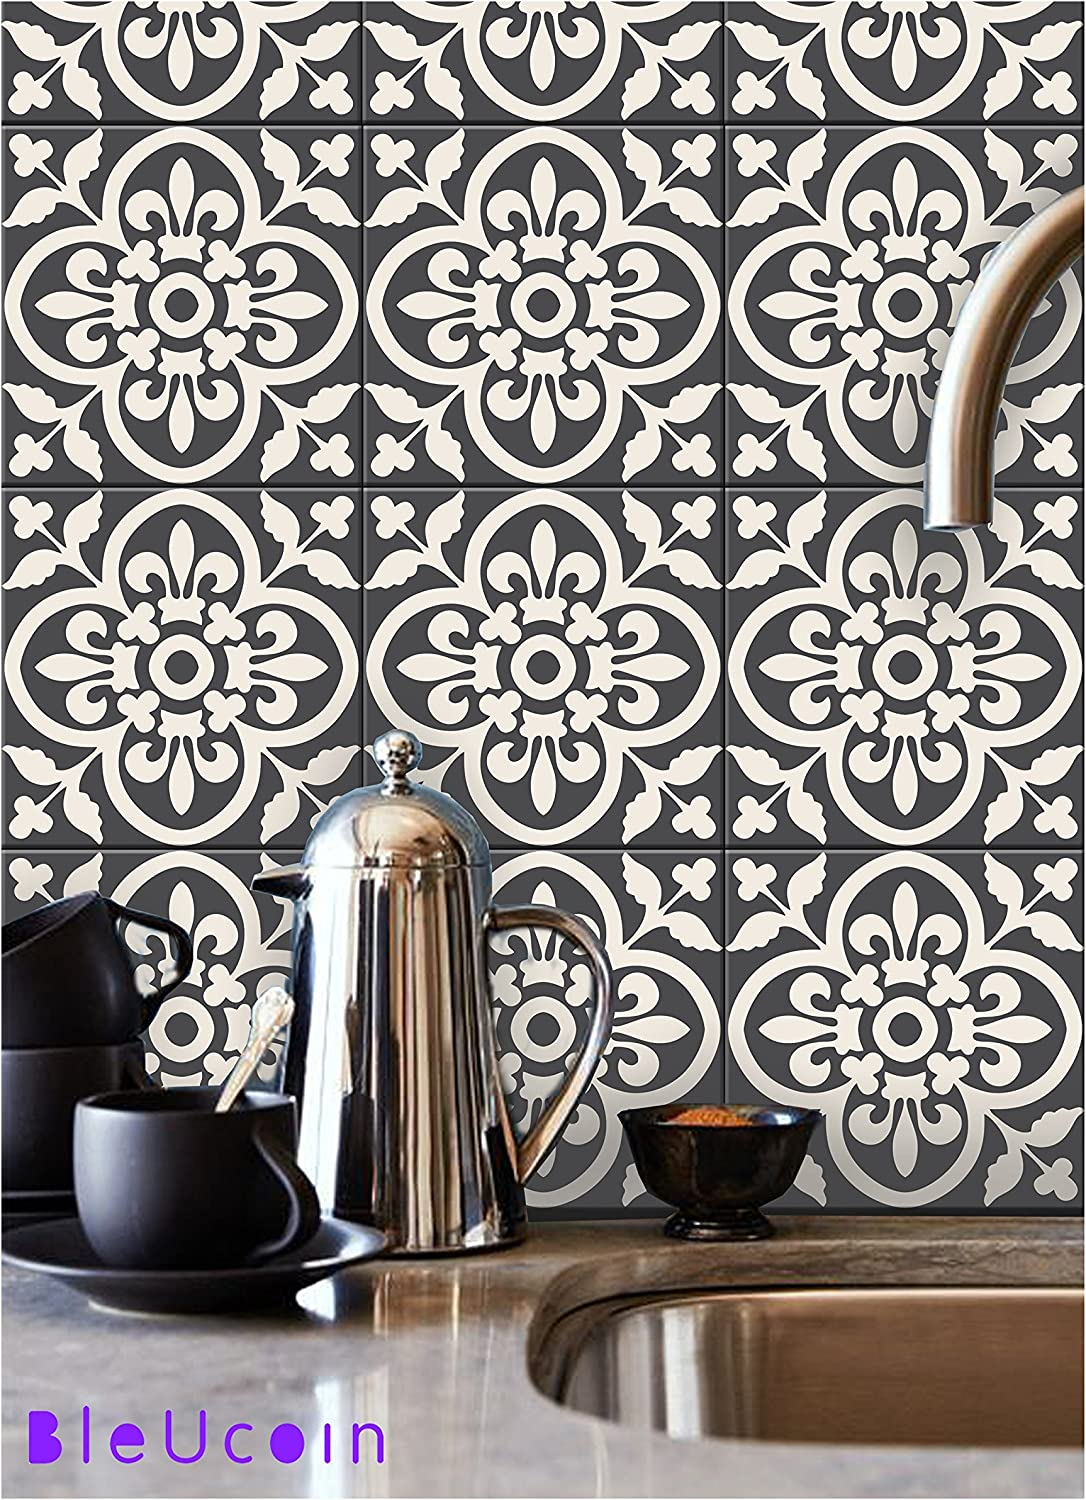 """Encaustic Moroccan Kitchen Bathroom Tile Stickers, Stair Riser Vinyl Decal, Peel & Stick DIY Home Decor (Pack of 44, Size: 6"""" x 6"""")"""